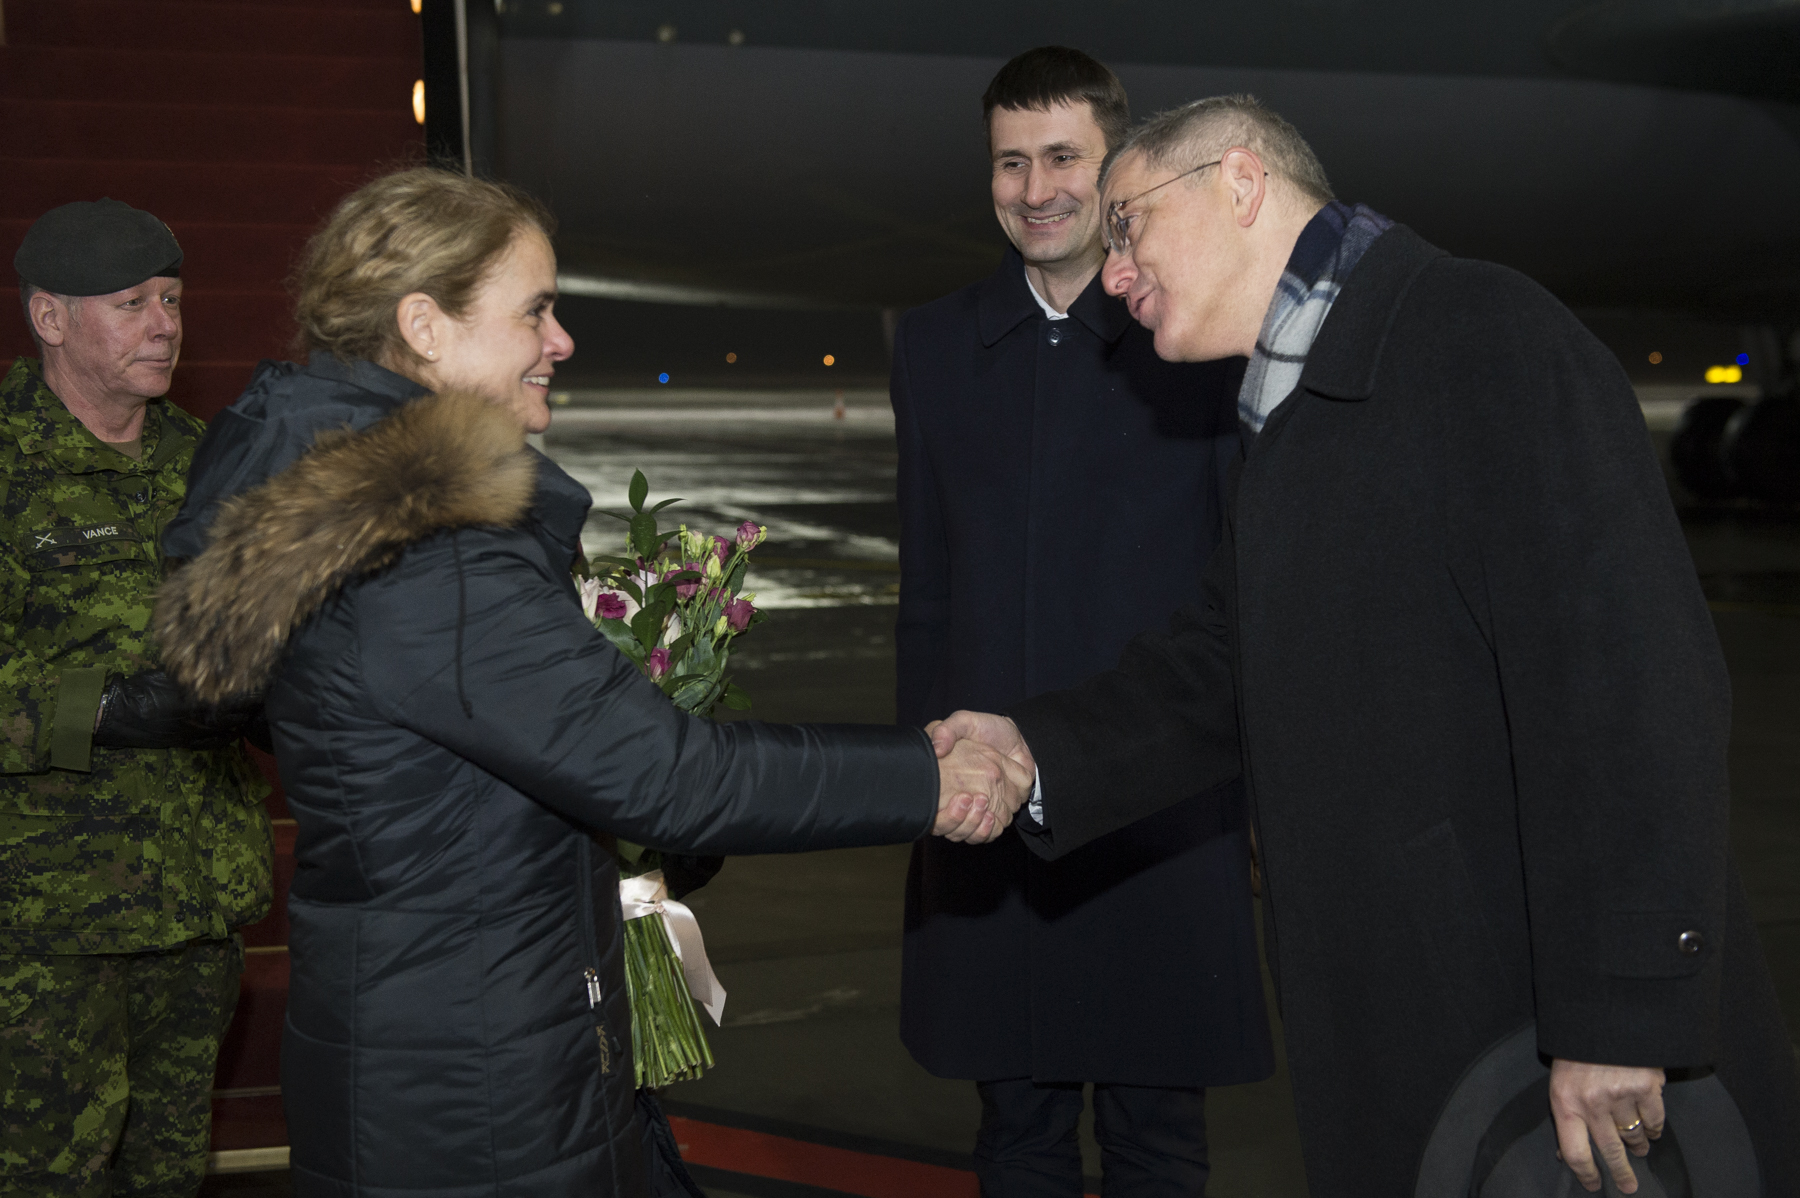 Upon arrival in Latvia, Her Excellency was welcomed by government officials.